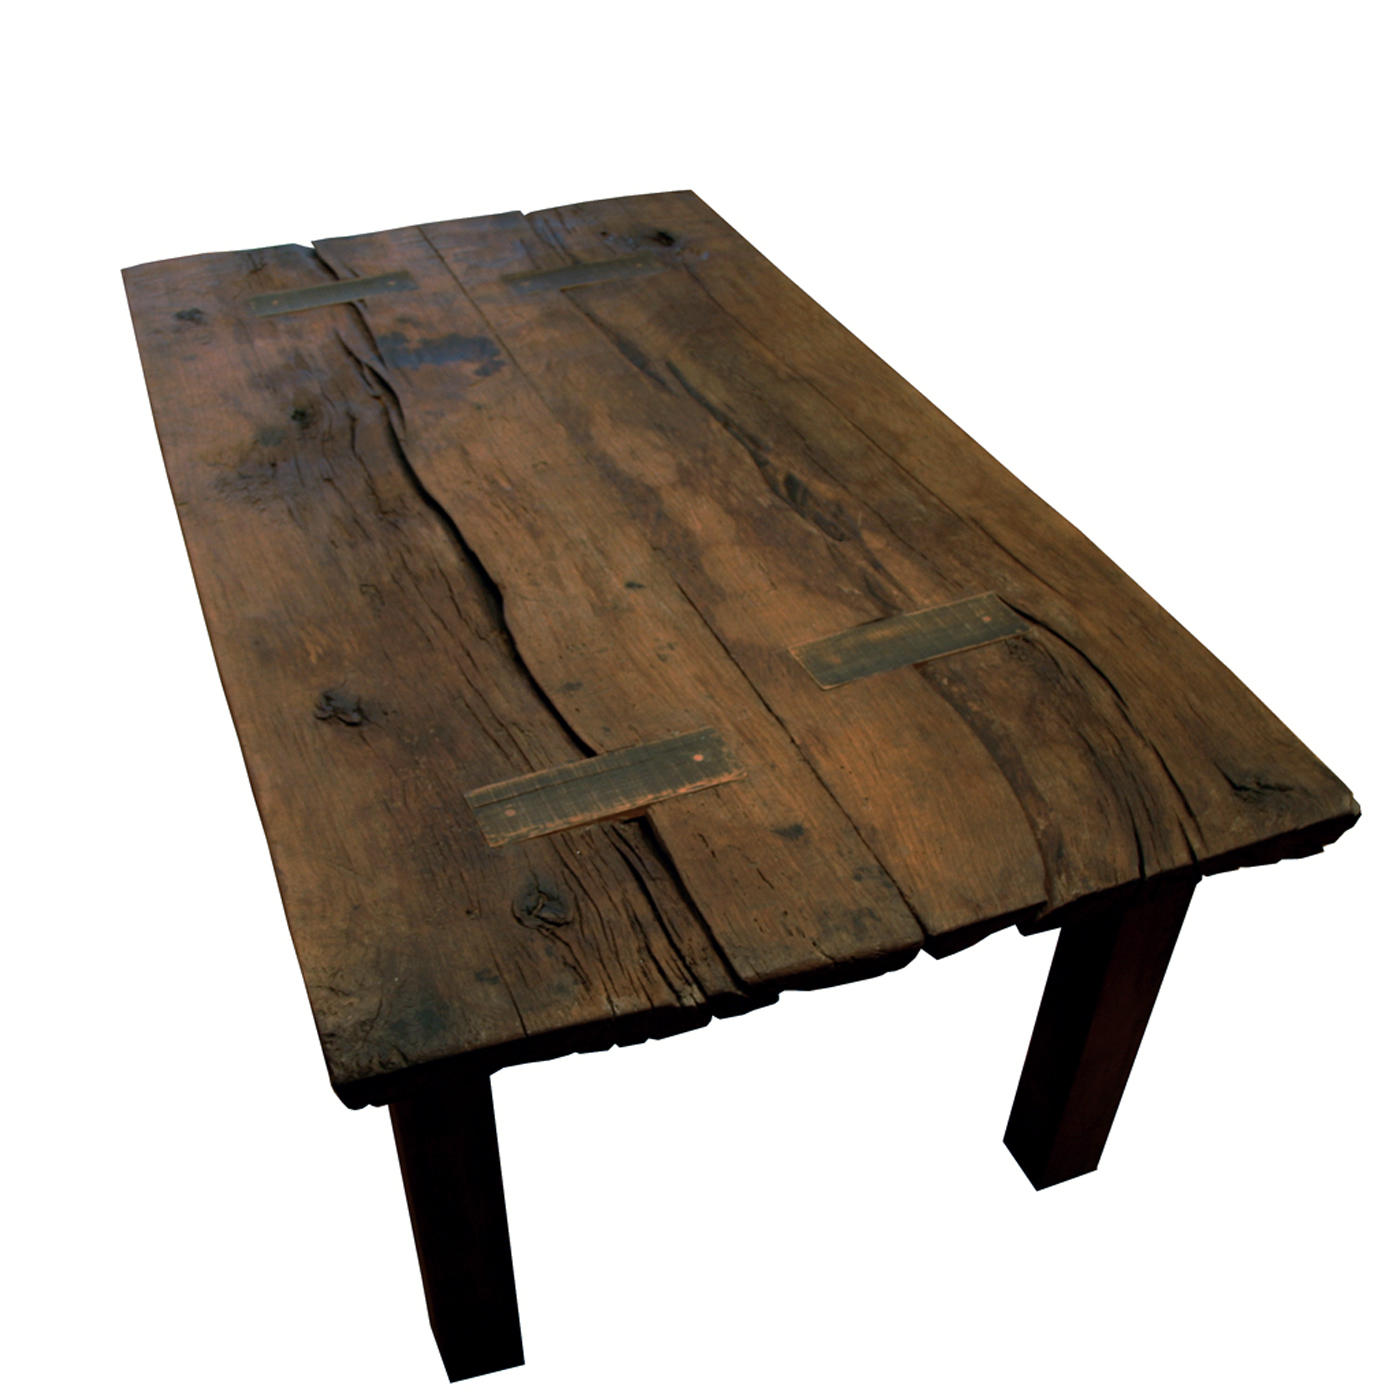 200 Year Old Reclaimed Oak Dining Table